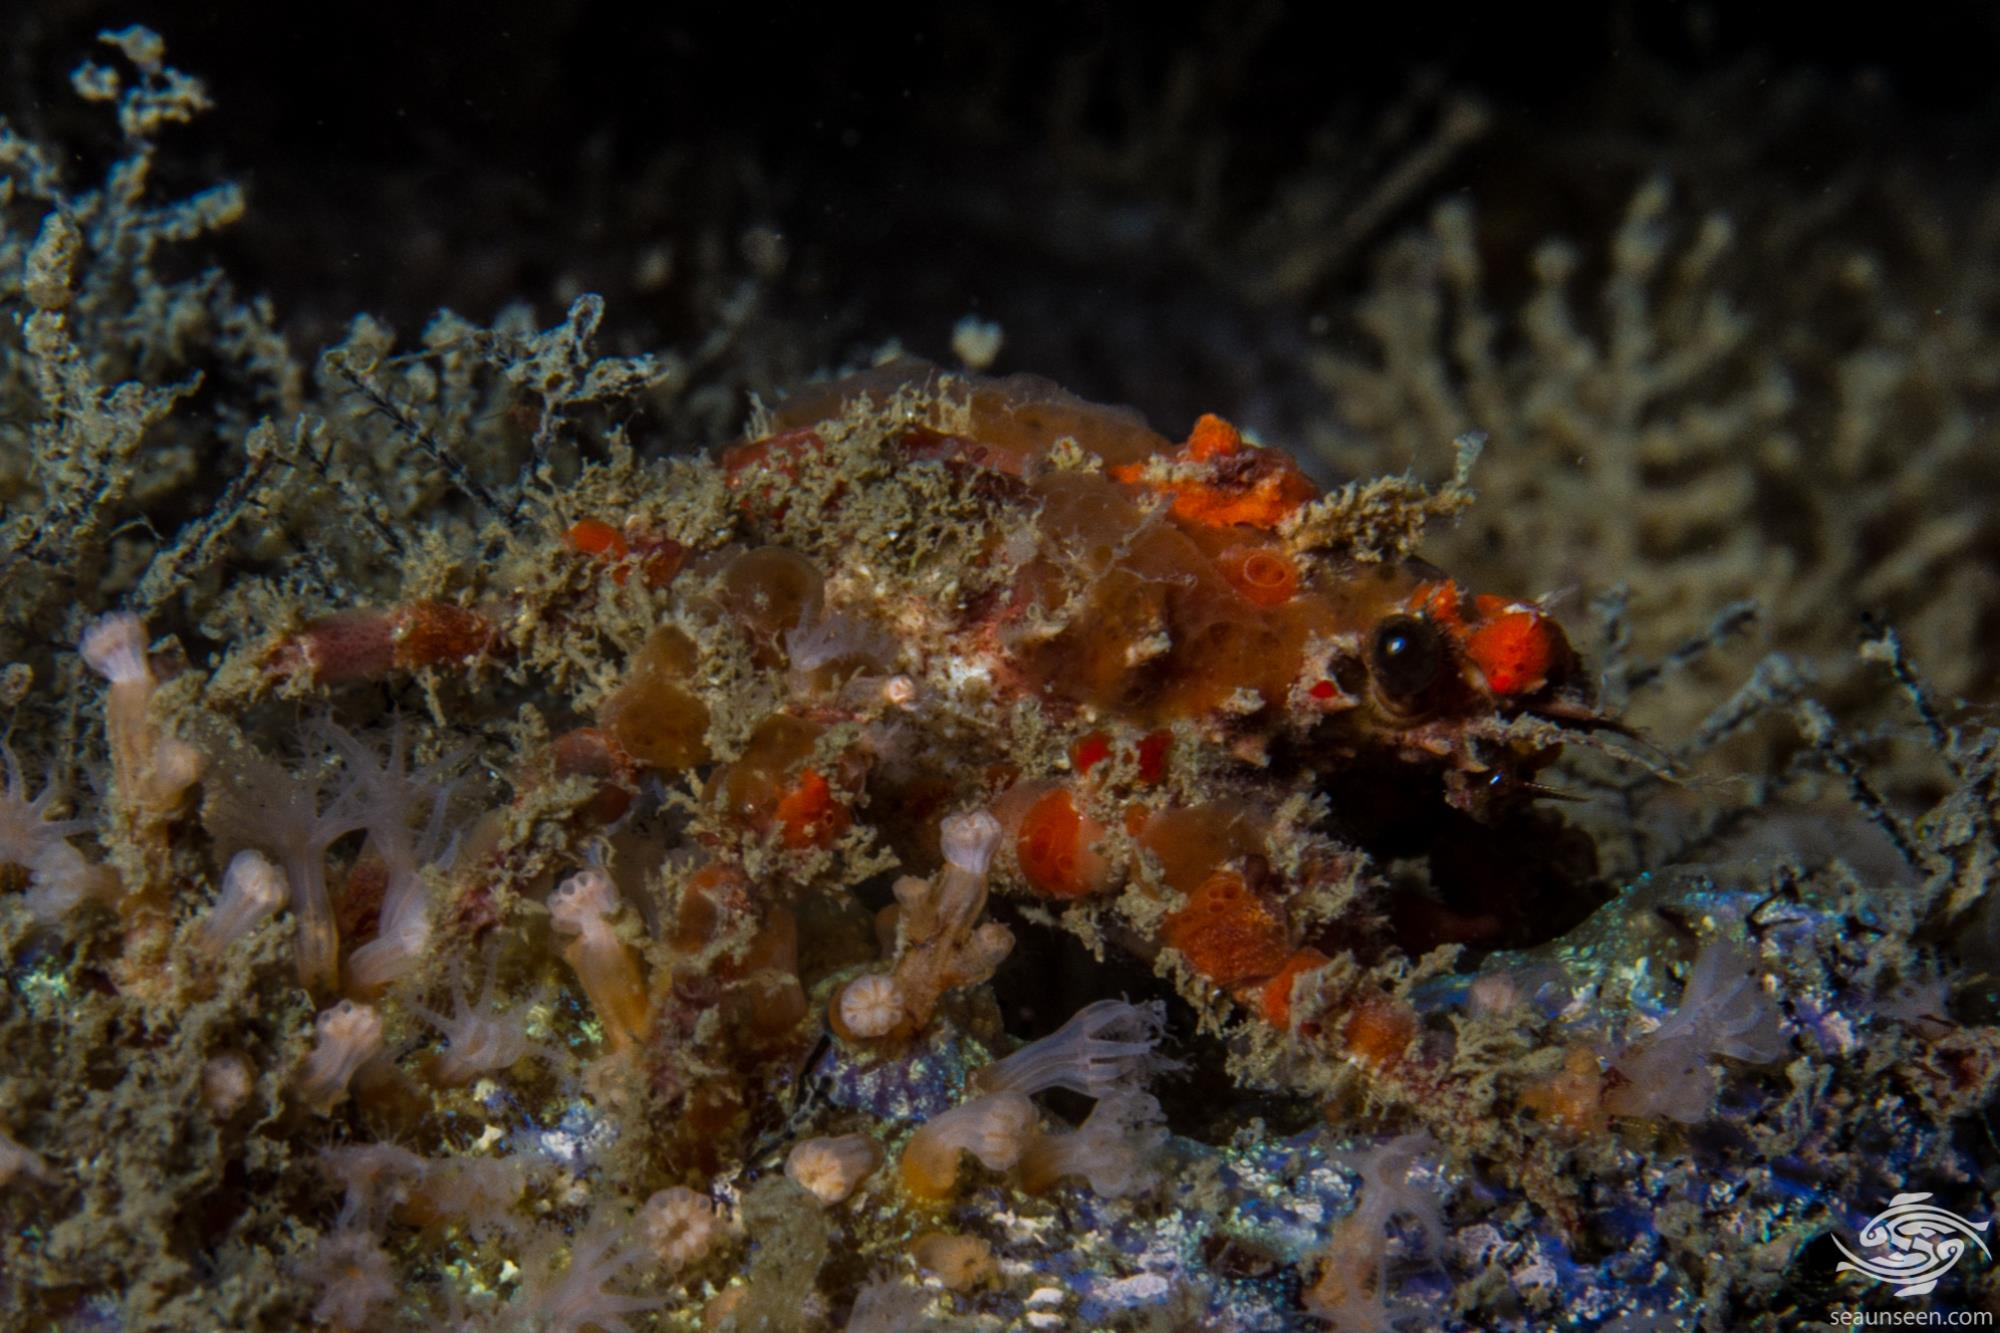 Decorator Crab belonging to the superfamily Majoidea